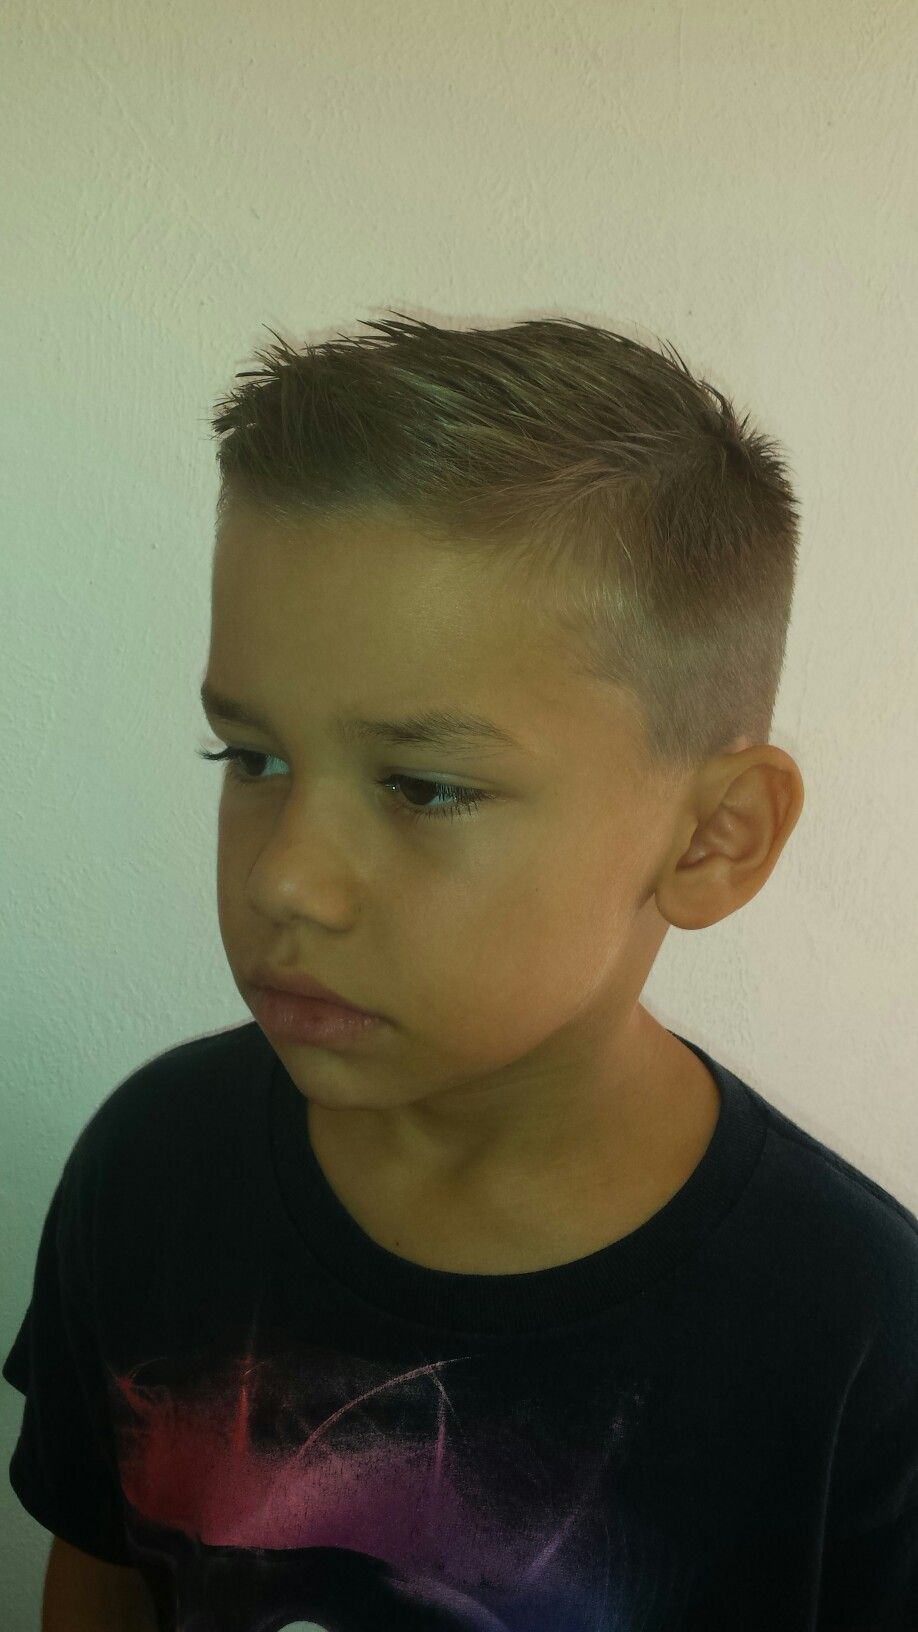 boy hair styling haircut lice fade haircut 7702 | c38632404a9030dc8773b440cc5dea5c